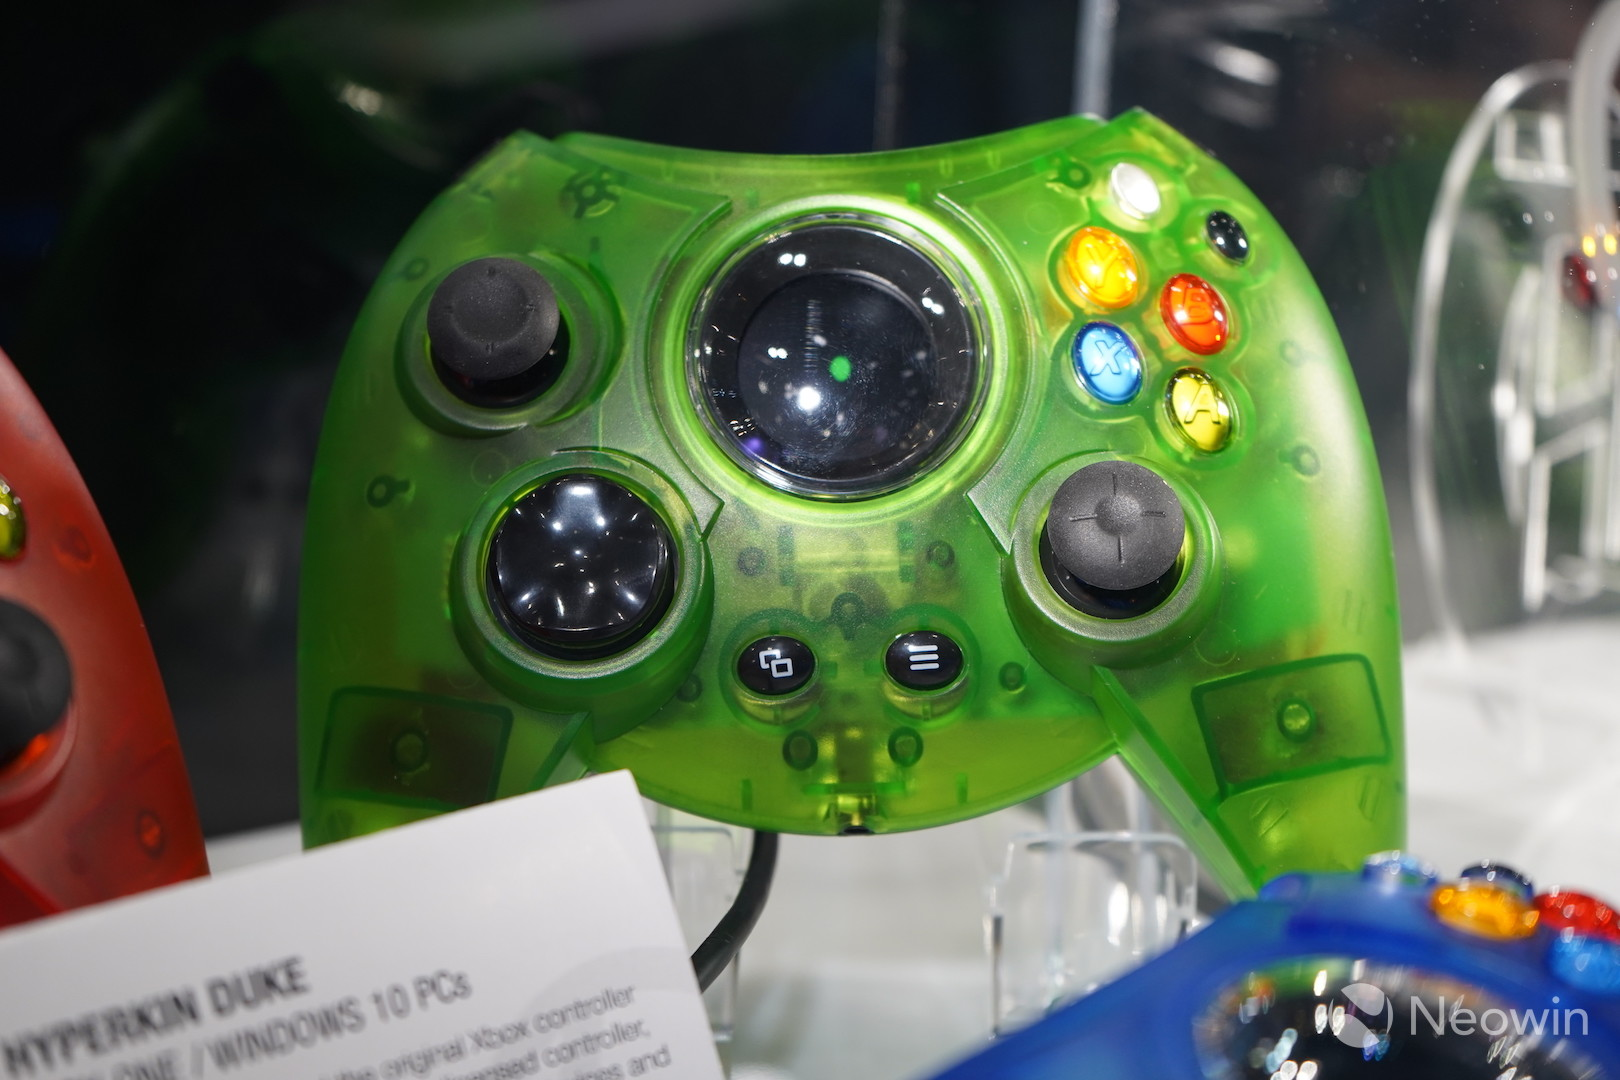 hight resolution of as you can see from the images and the video the new controller comes in four different colors while the colors are certainly bright they aren t made with